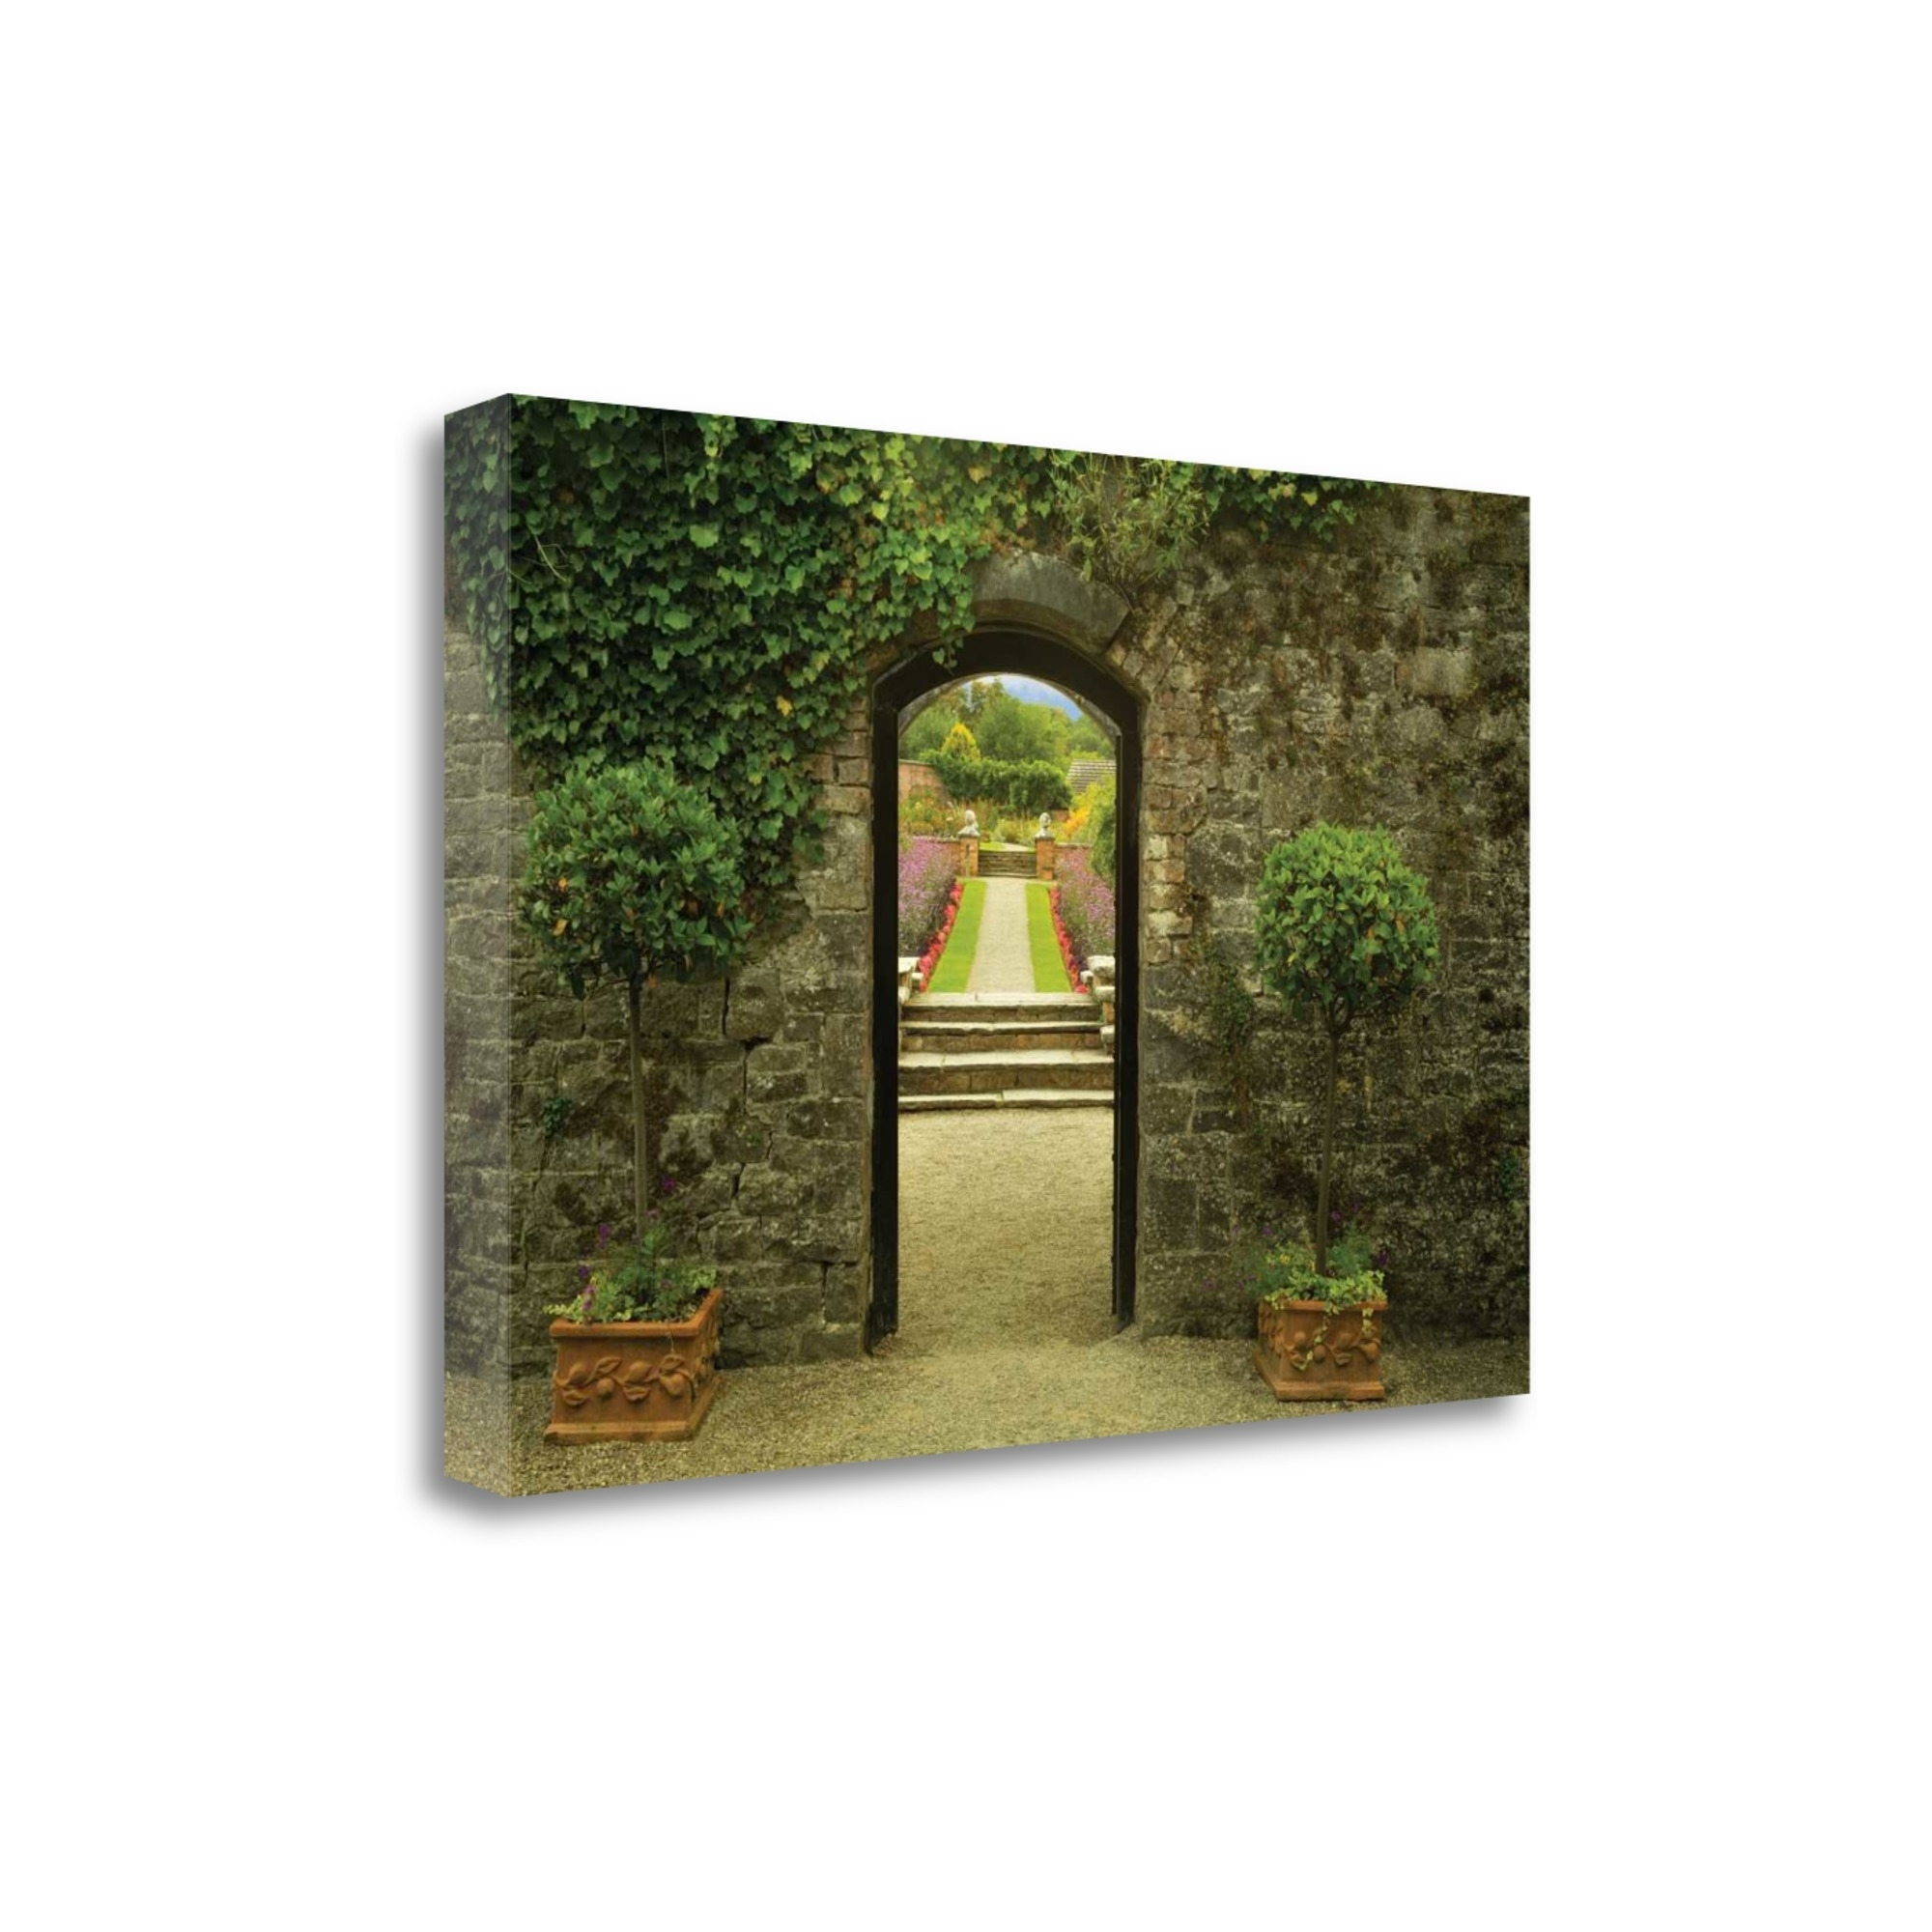 "Garden Arch By Dennis Frates, 47"" x 32\"" Fine Art Giclee Print on Gallery Wrap Canvas, Ready to Hang"